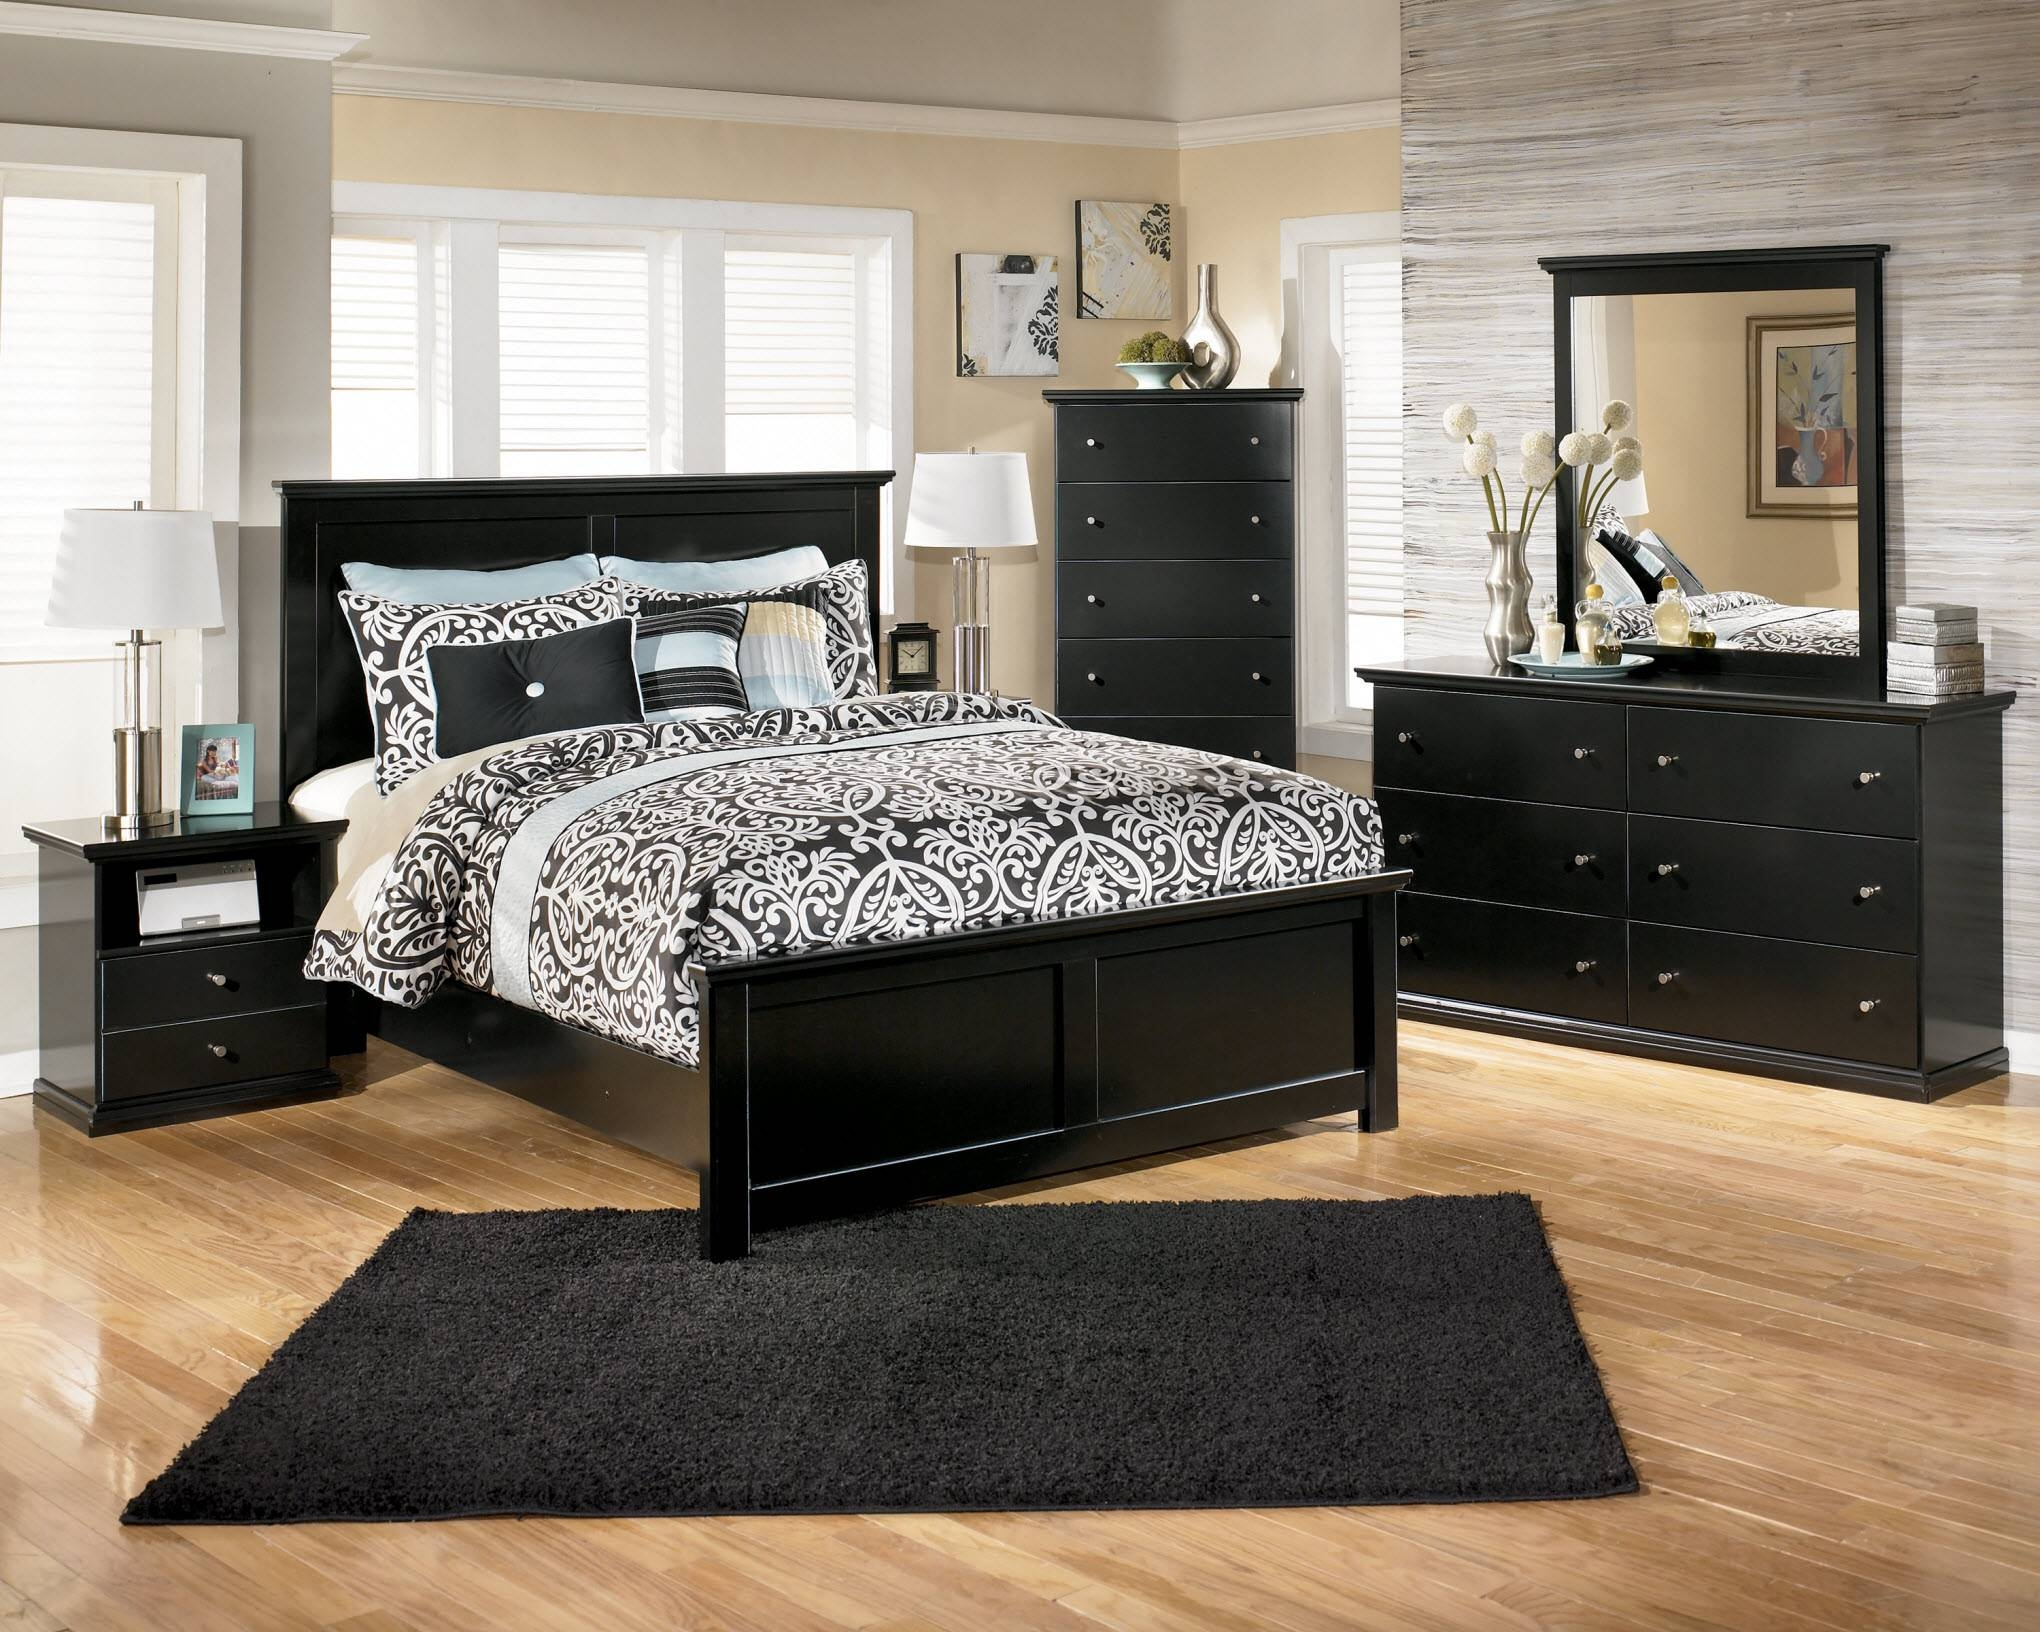 Black Bedroom Furniture - Conveying Formality And Elegance (Photos intended for Dark Wood Wardrobe Sets (Image 22 of 30)